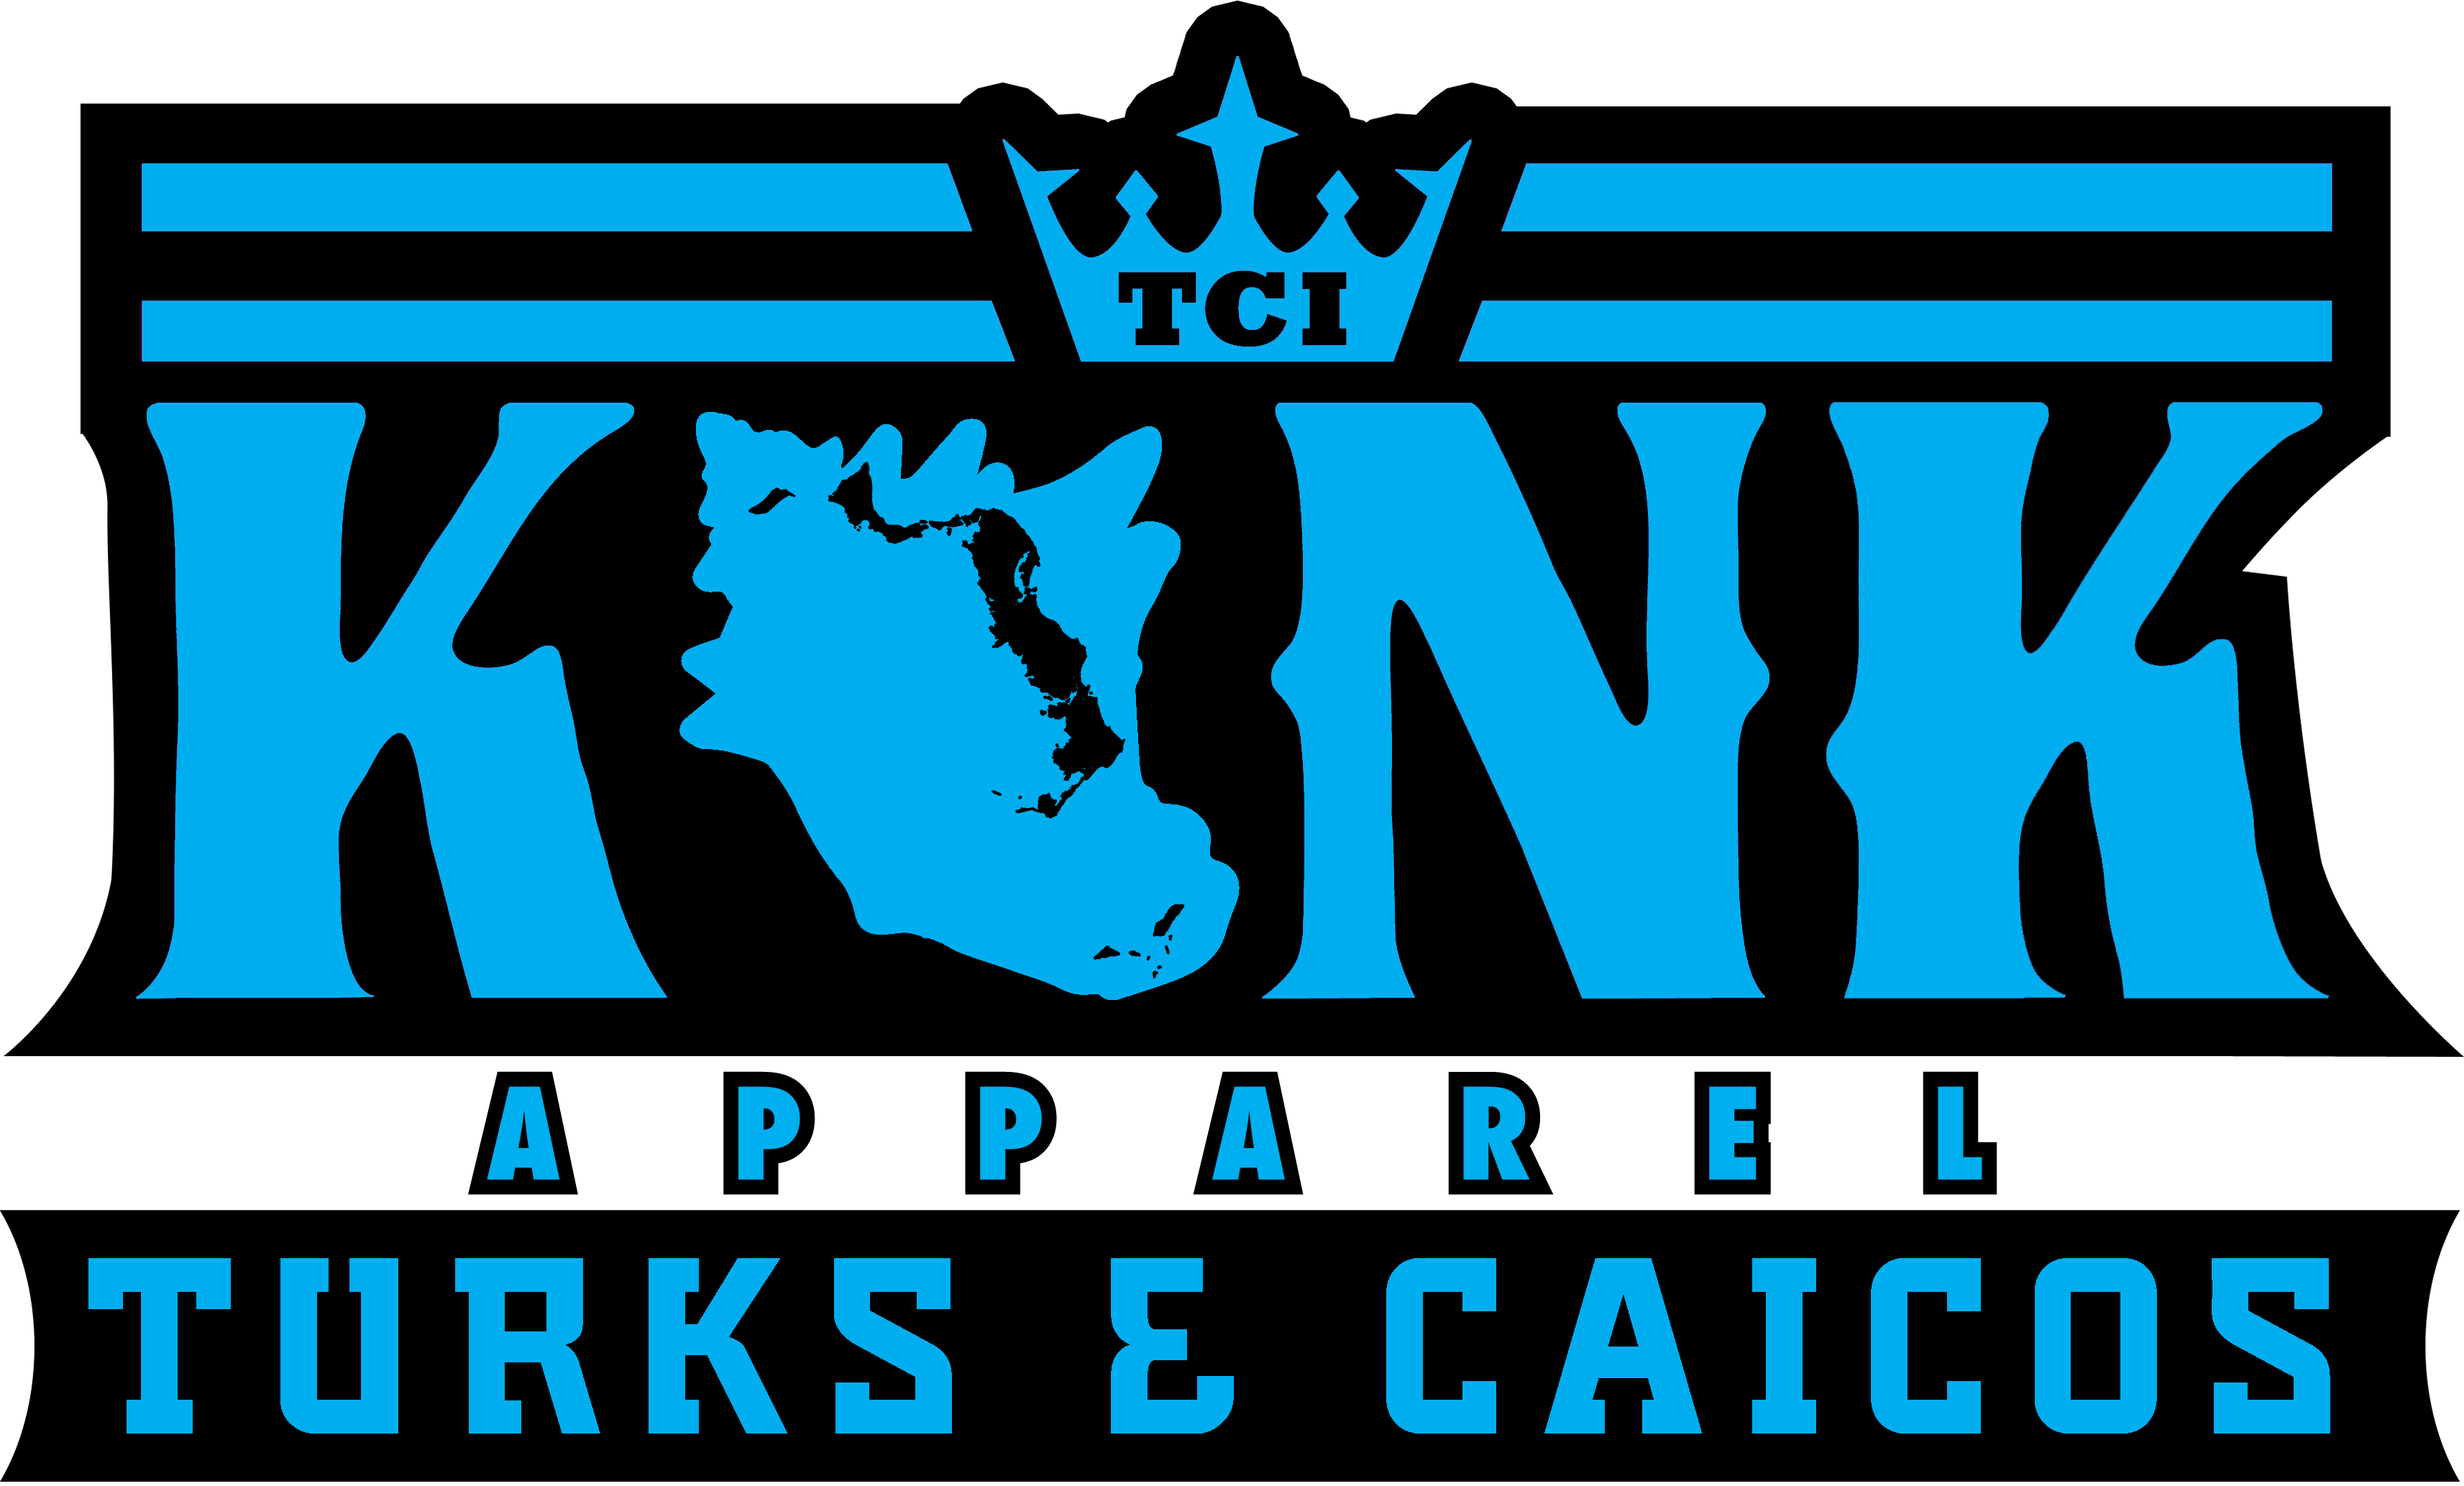 Konkz Apparel  Turks & Caicos Islands